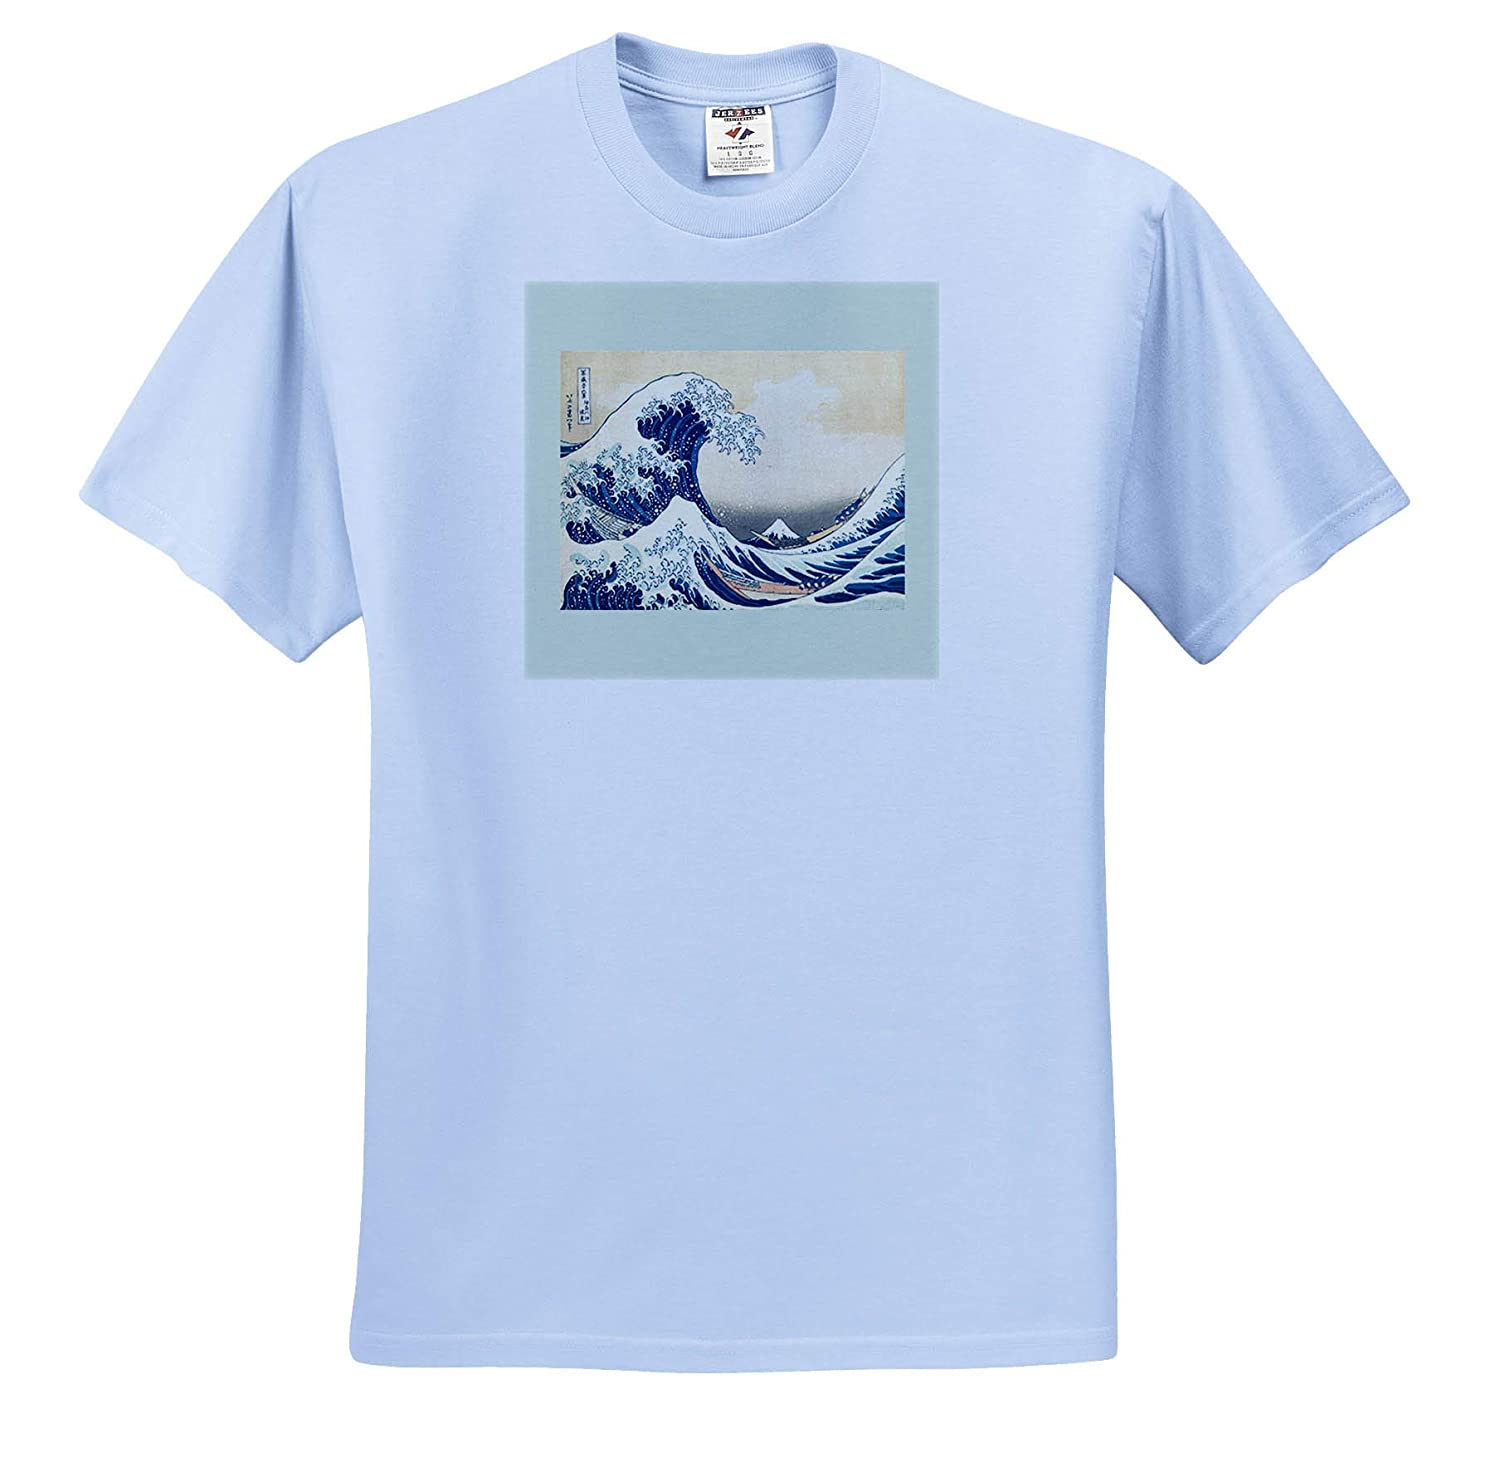 Beyond The Great Wave 3dRose Made in The Highlands Print of Hokusai Art- The Great Wave Adult T-Shirt XL ts/_309595